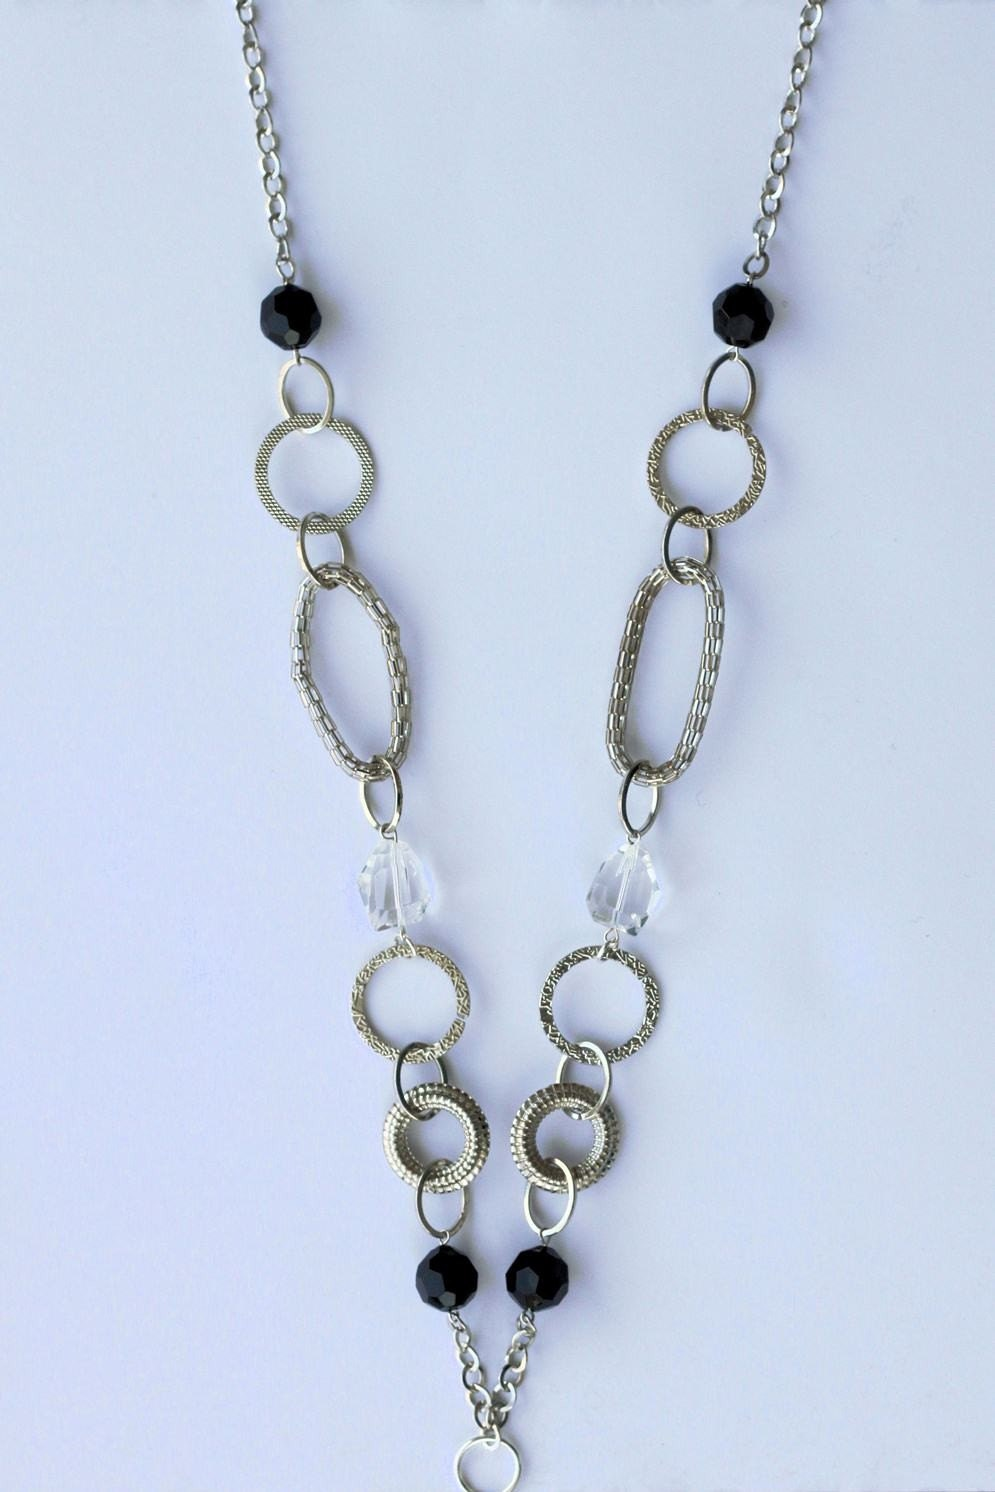 chunky black and clear beaded lanyard necklace with large